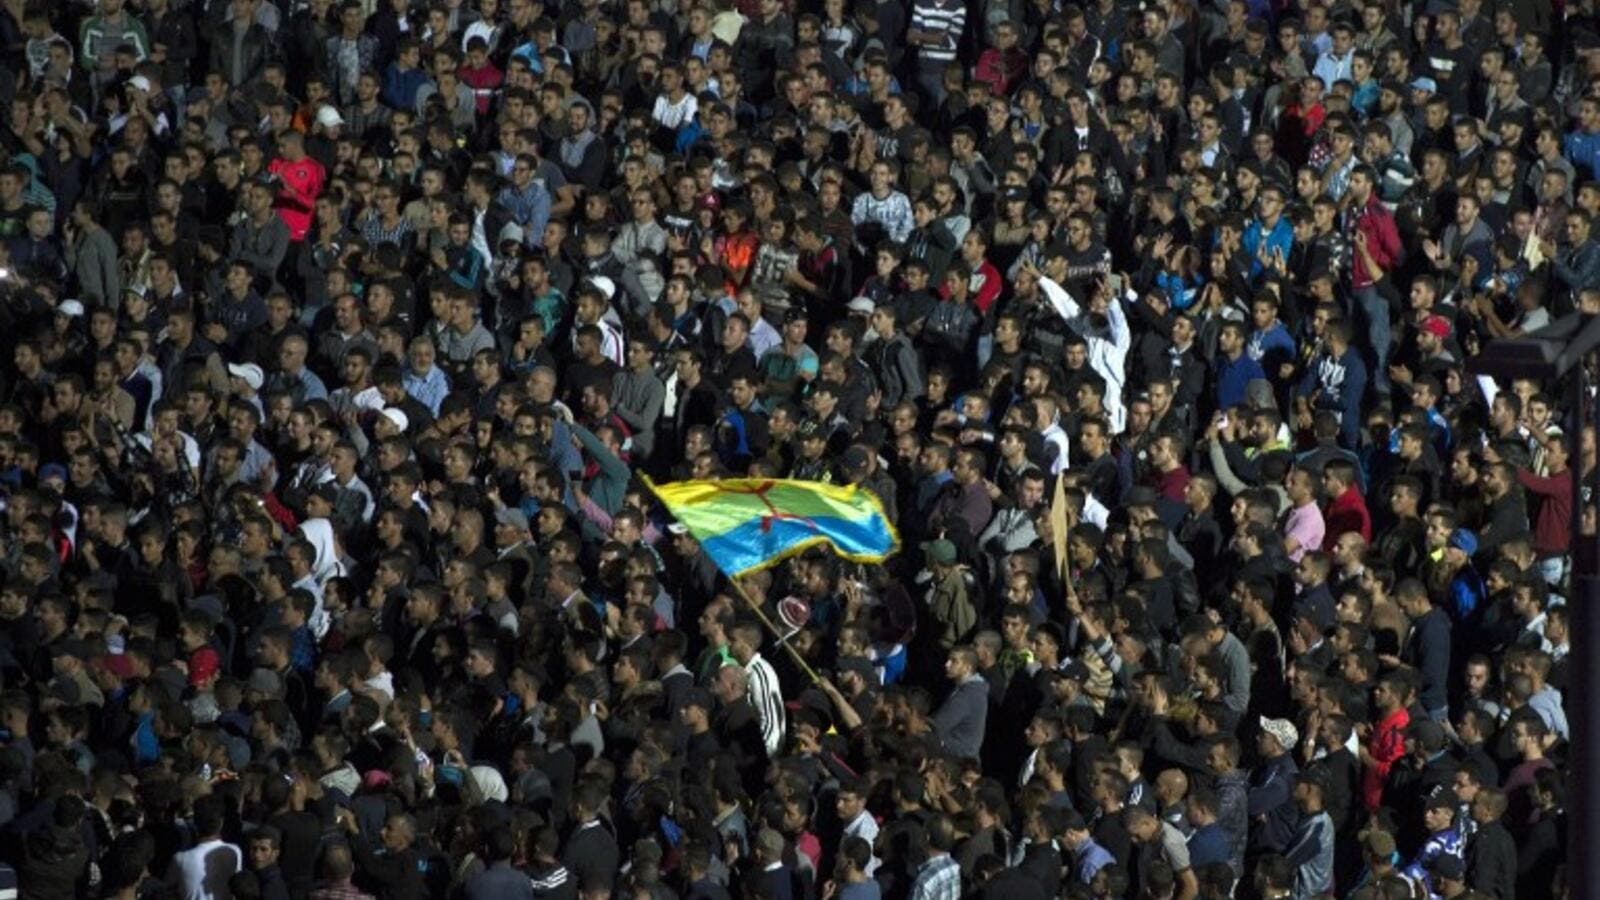 Protesters wave the Amazigh (Berber) flag as they shout slogans in the northern city of Al Hoceima on October 30, 2016, following the death of fishmonger Mouhcine Fikri, who was crushed to death on October 28 in a rubbish truck in Al Hoceima. (AFP/Fadel Senna)